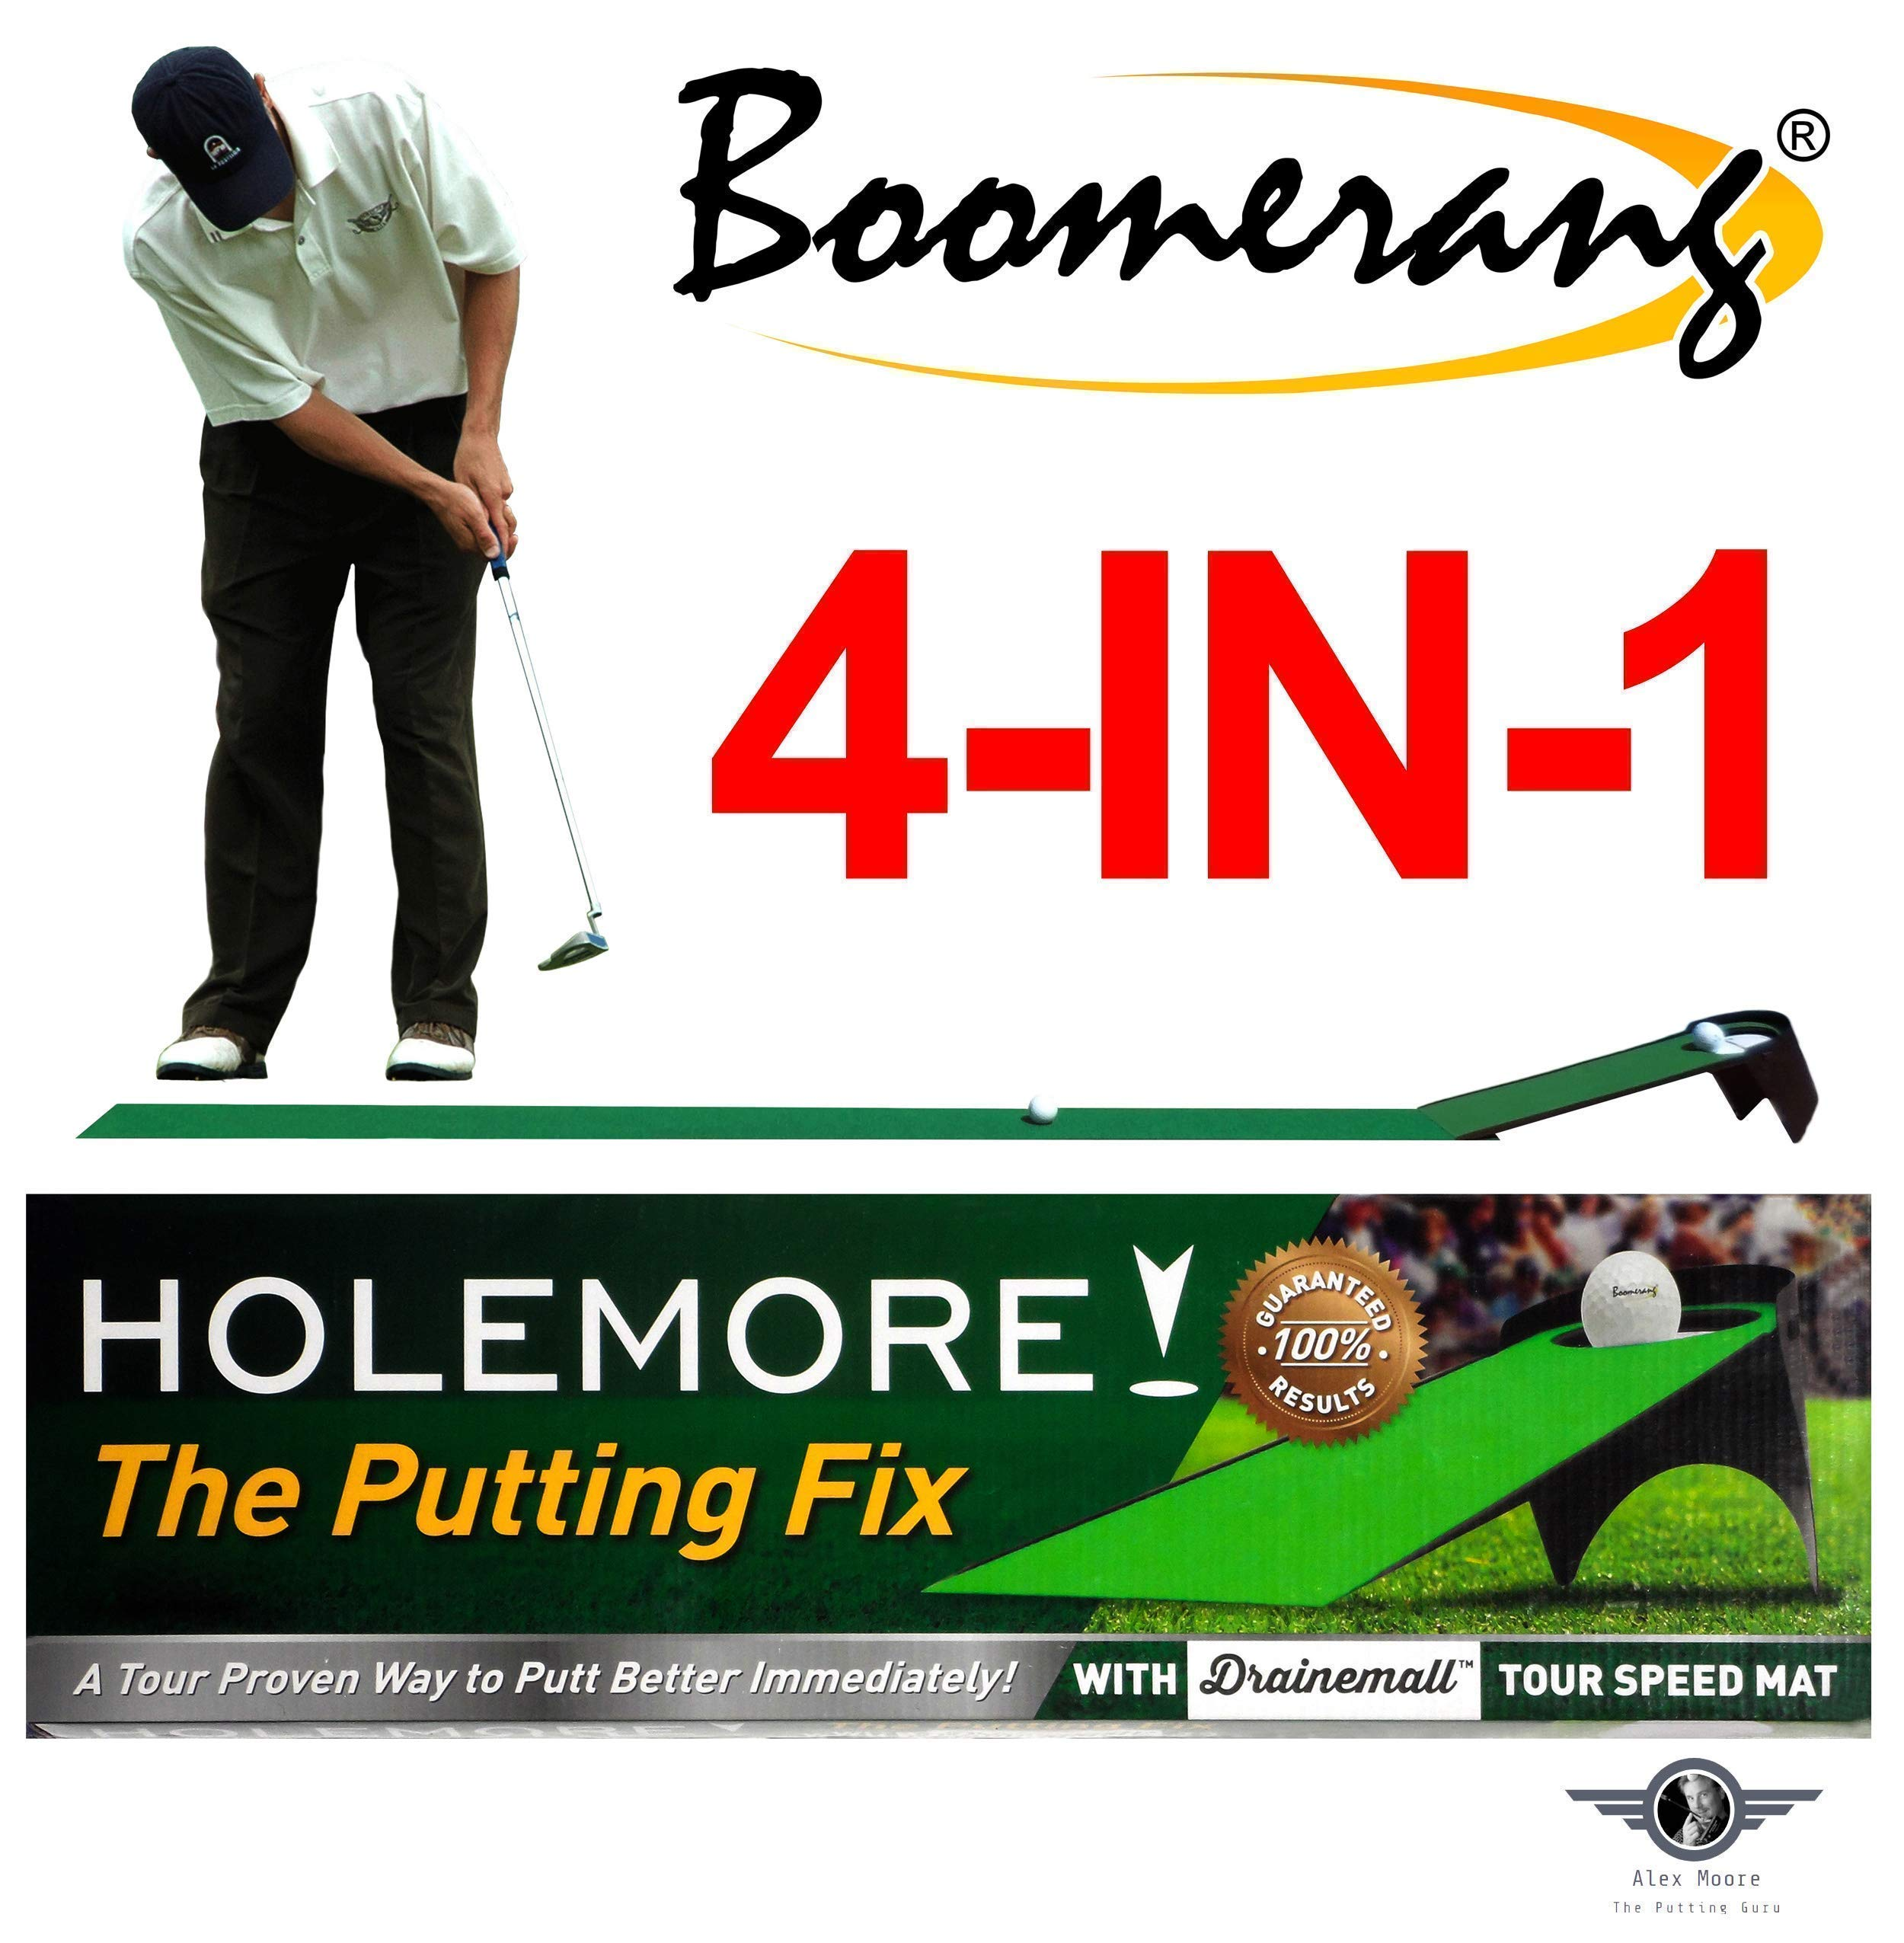 Boomerang Pressure Putting Trainer, Golf Putting Training Aid, Tour Speed Putting Mat & Ball Returner - Pressure Putting Practice Anywhere, Anytime by HOLEMORE The Putting Fix